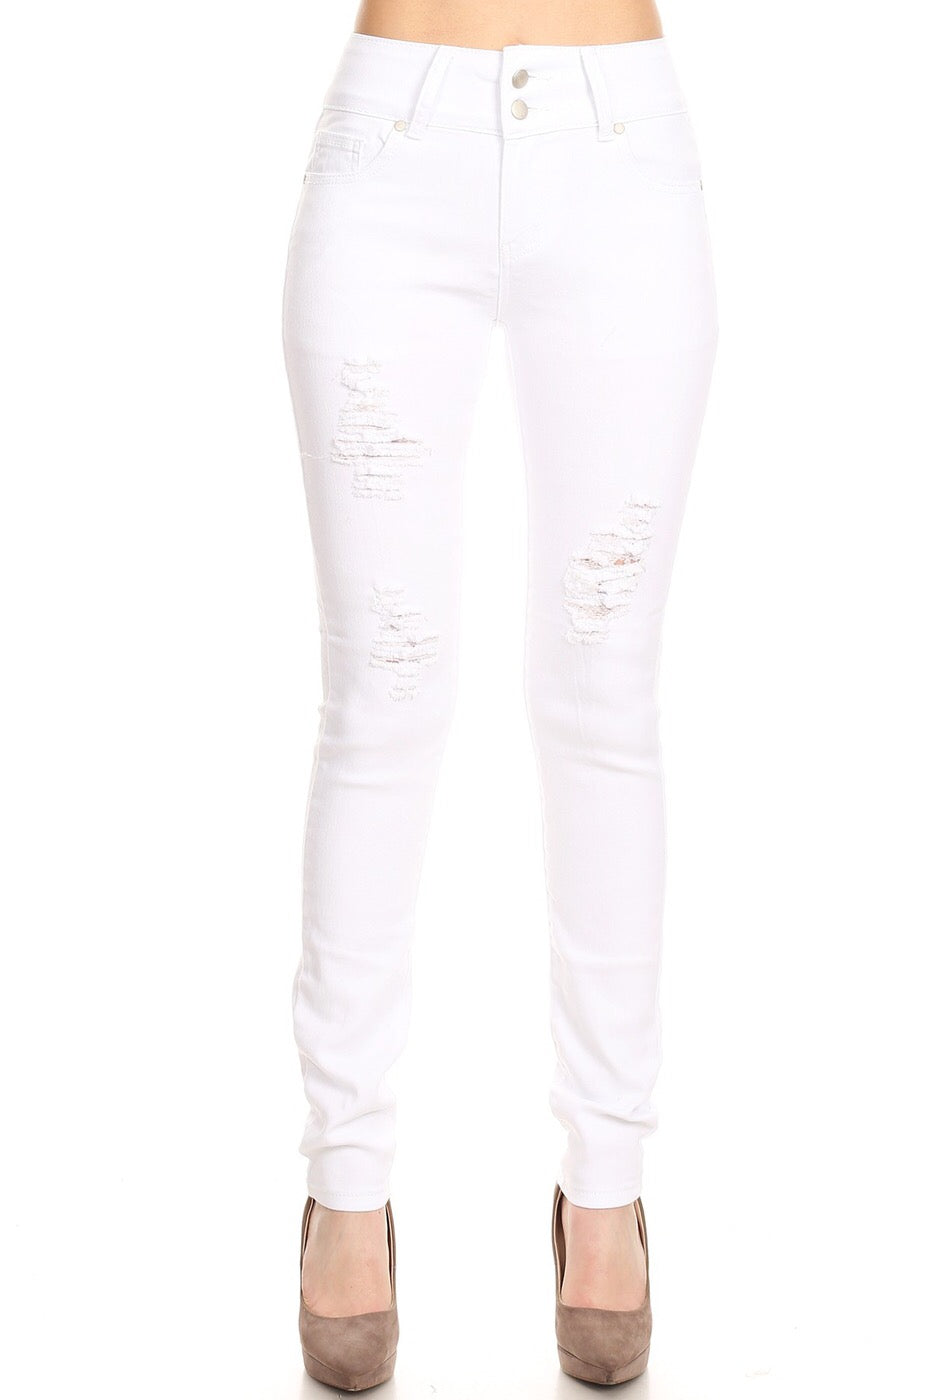 BROOKLYN ESTATE SKINNY WHITE DENIM